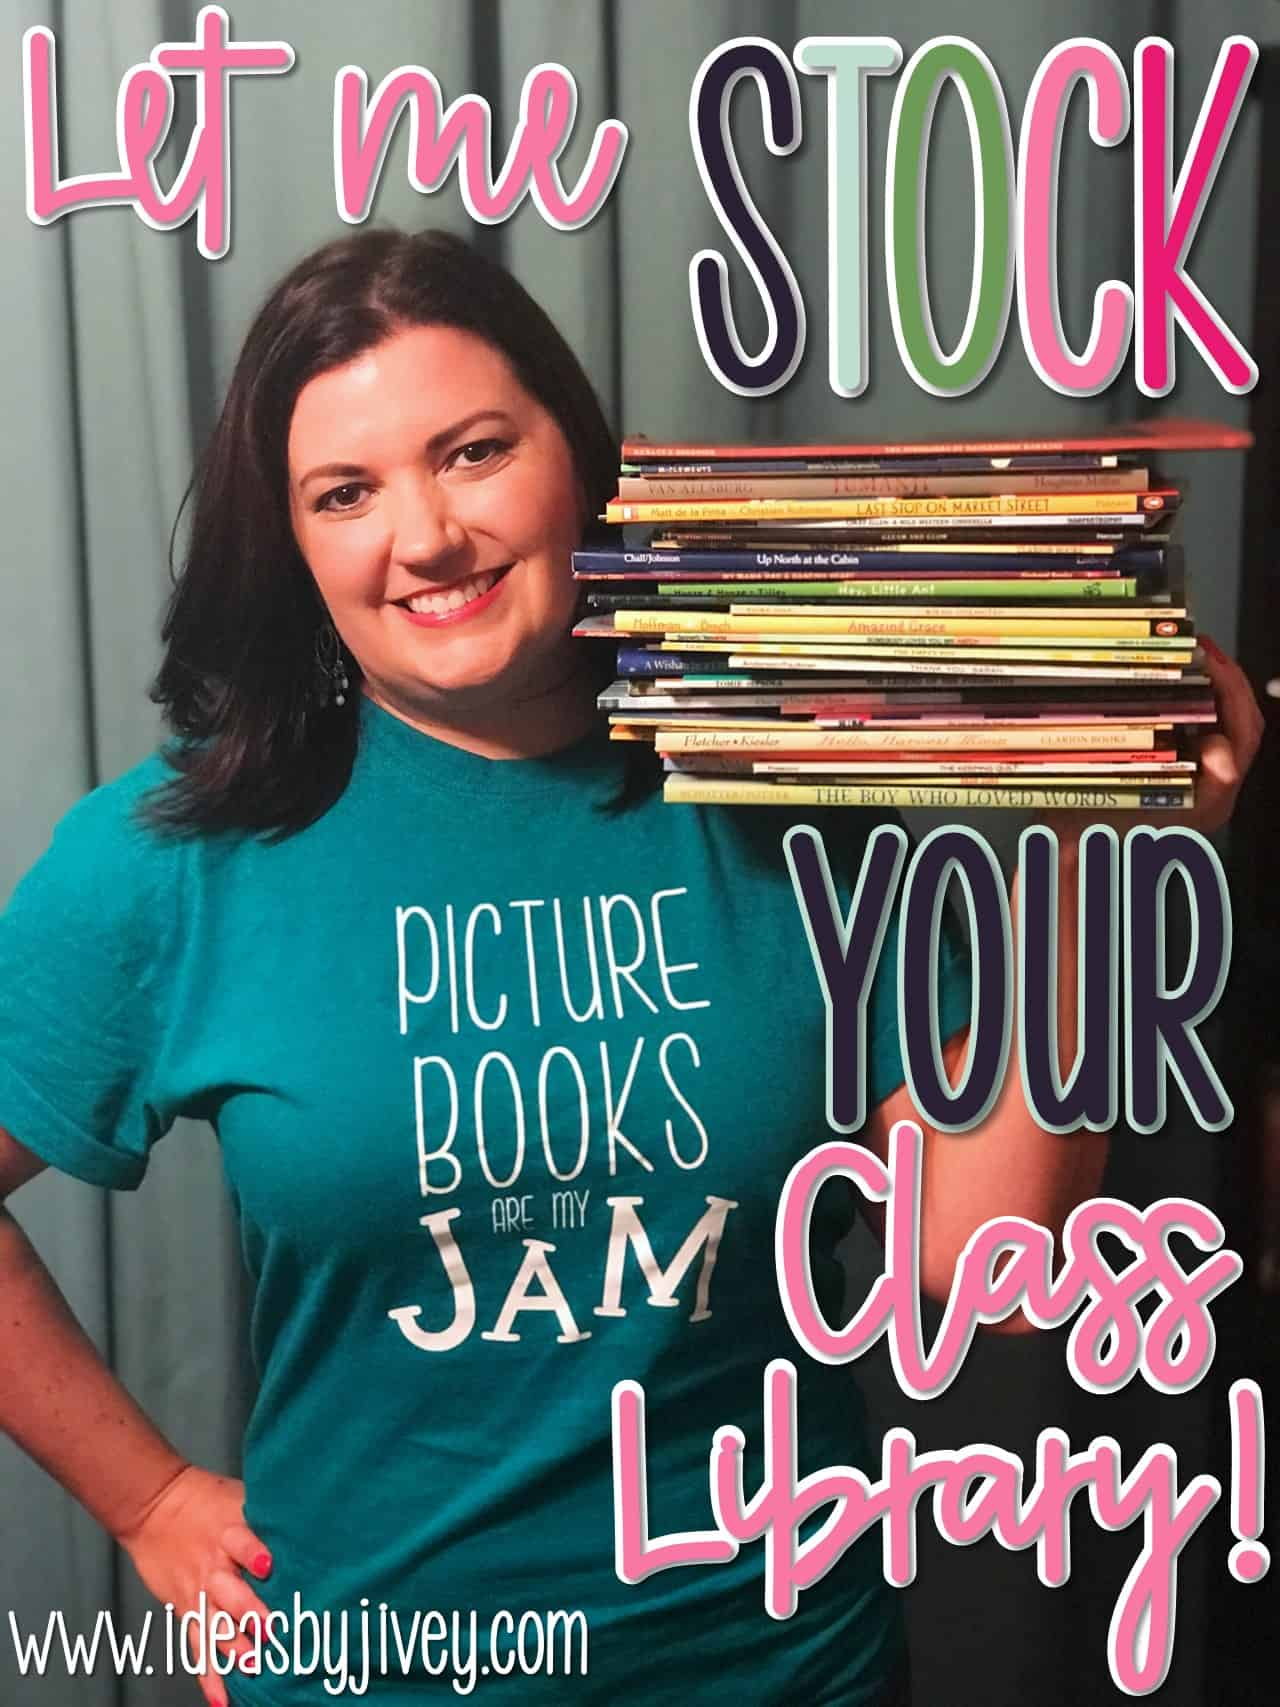 Enter this GIGANTIC giveaway happening on Jivey's website! Win a year of lessons AND the books to go with them!